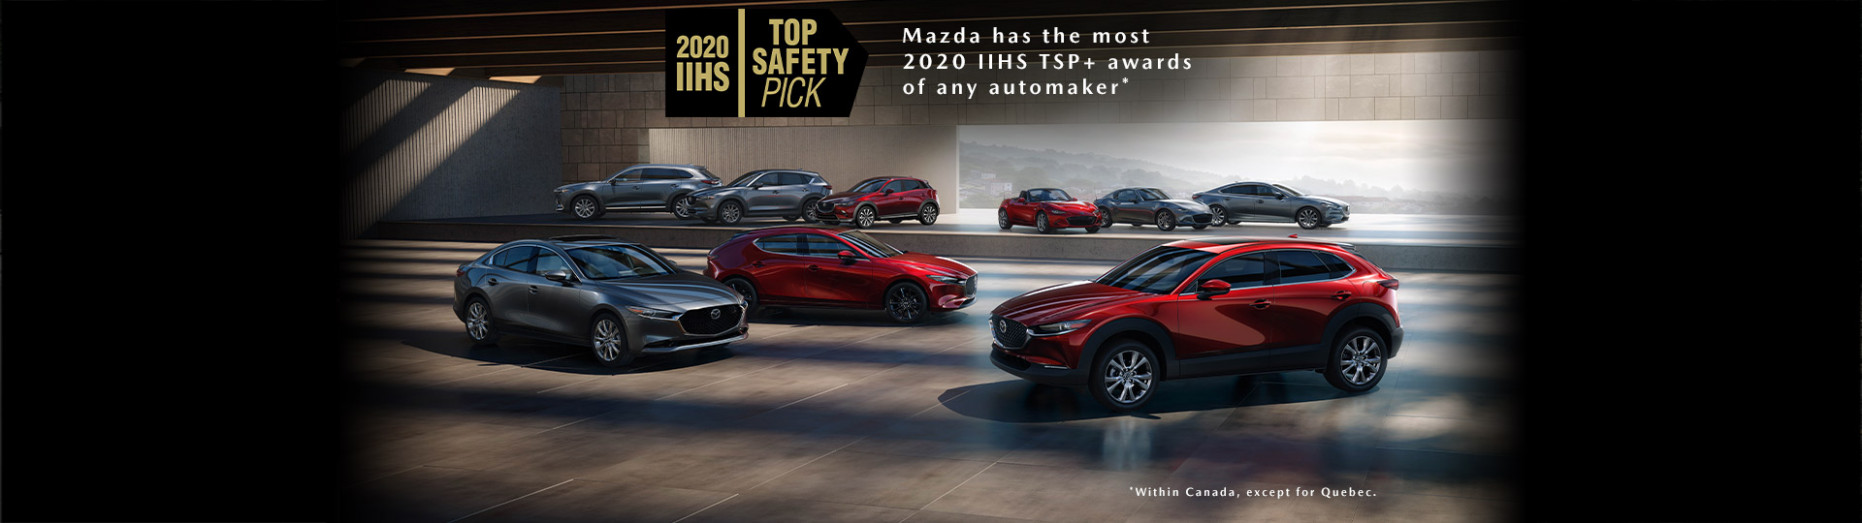 Mazda Canada | Mid-Size Cars, Compacts, Crossovers, SUVs